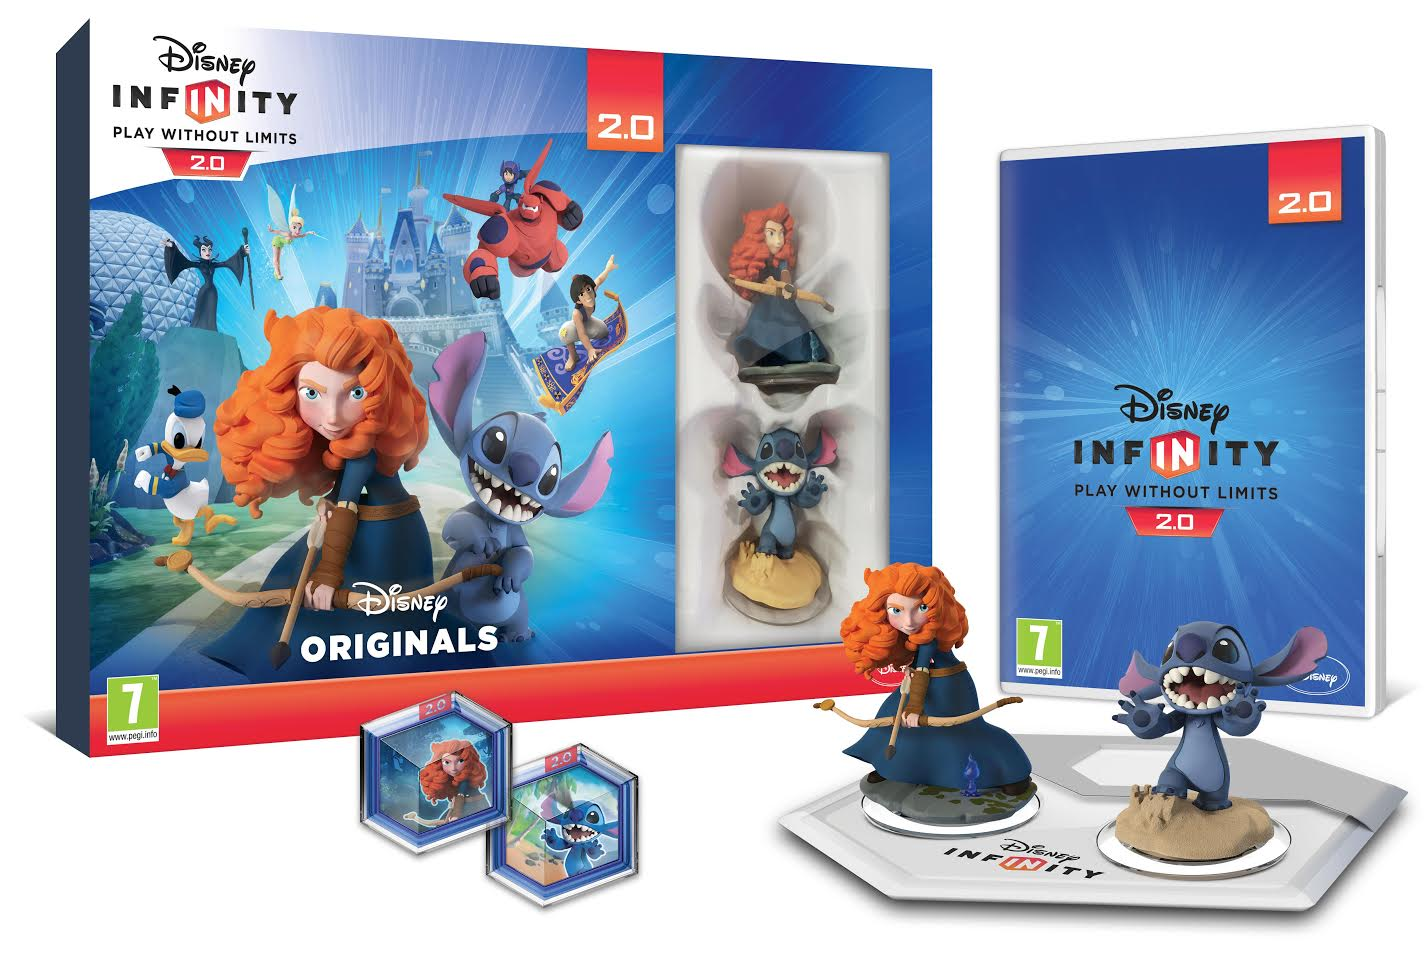 Disney Infinity 2.0 Originals